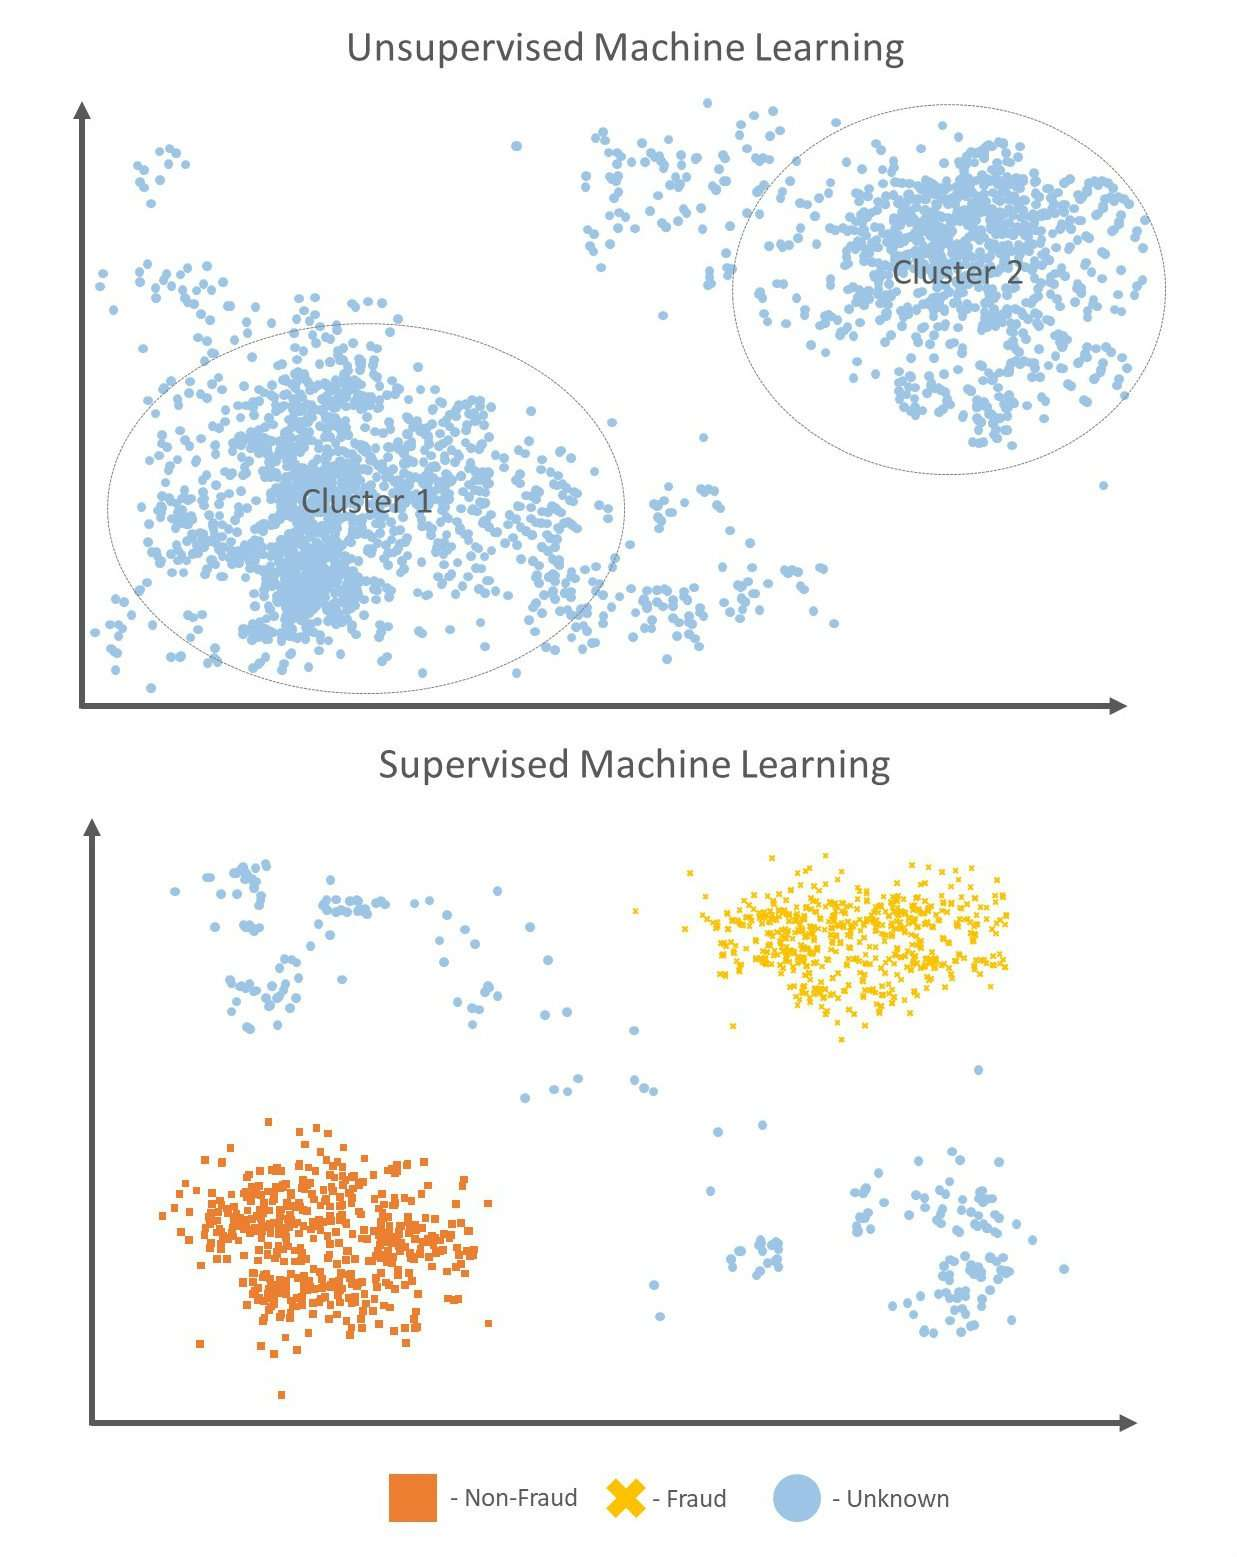 Unsupervised ML vs Supervised ML